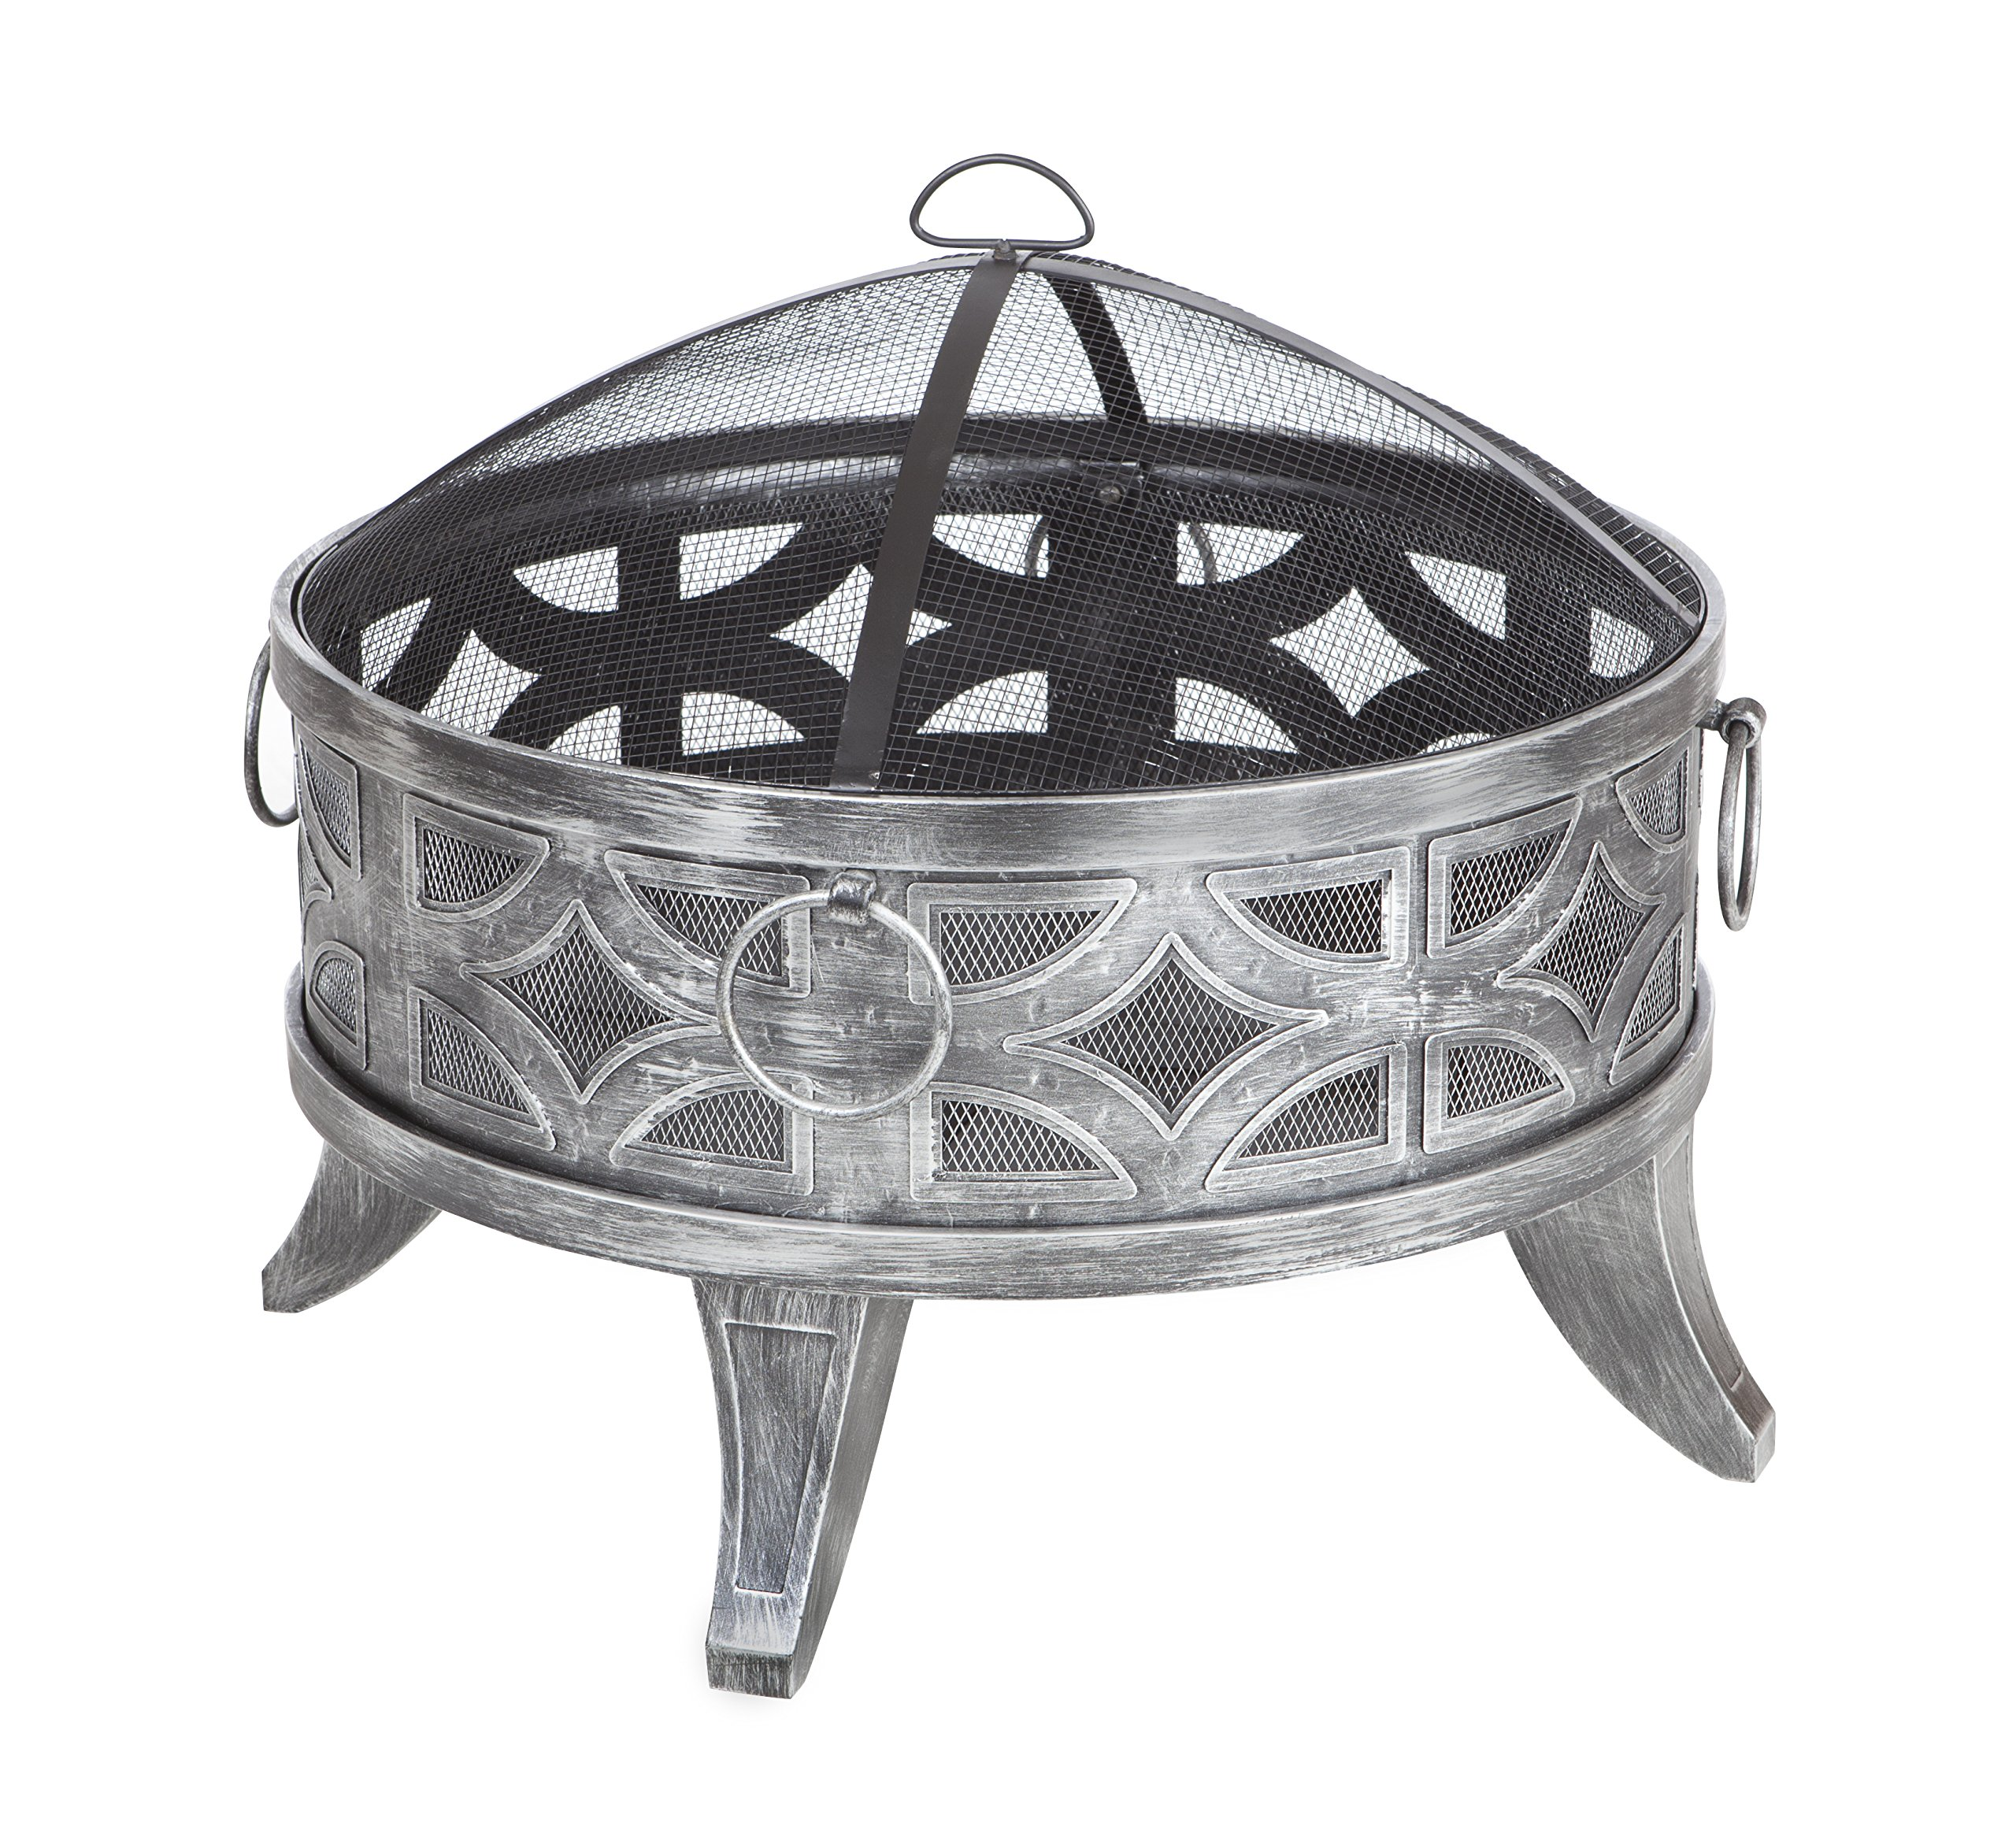 "Fire Sense 62238 Firenzo Round Fire Pit, Multicolor - 26"" high temperature antique pewter finish Steel fire bowl 9"" deep fire bowl One-piece mesh spark screen with high temperature paint - patio, outdoor-decor, fire-pits-outdoor-fireplaces - 91FC%2BZrPw0L -"